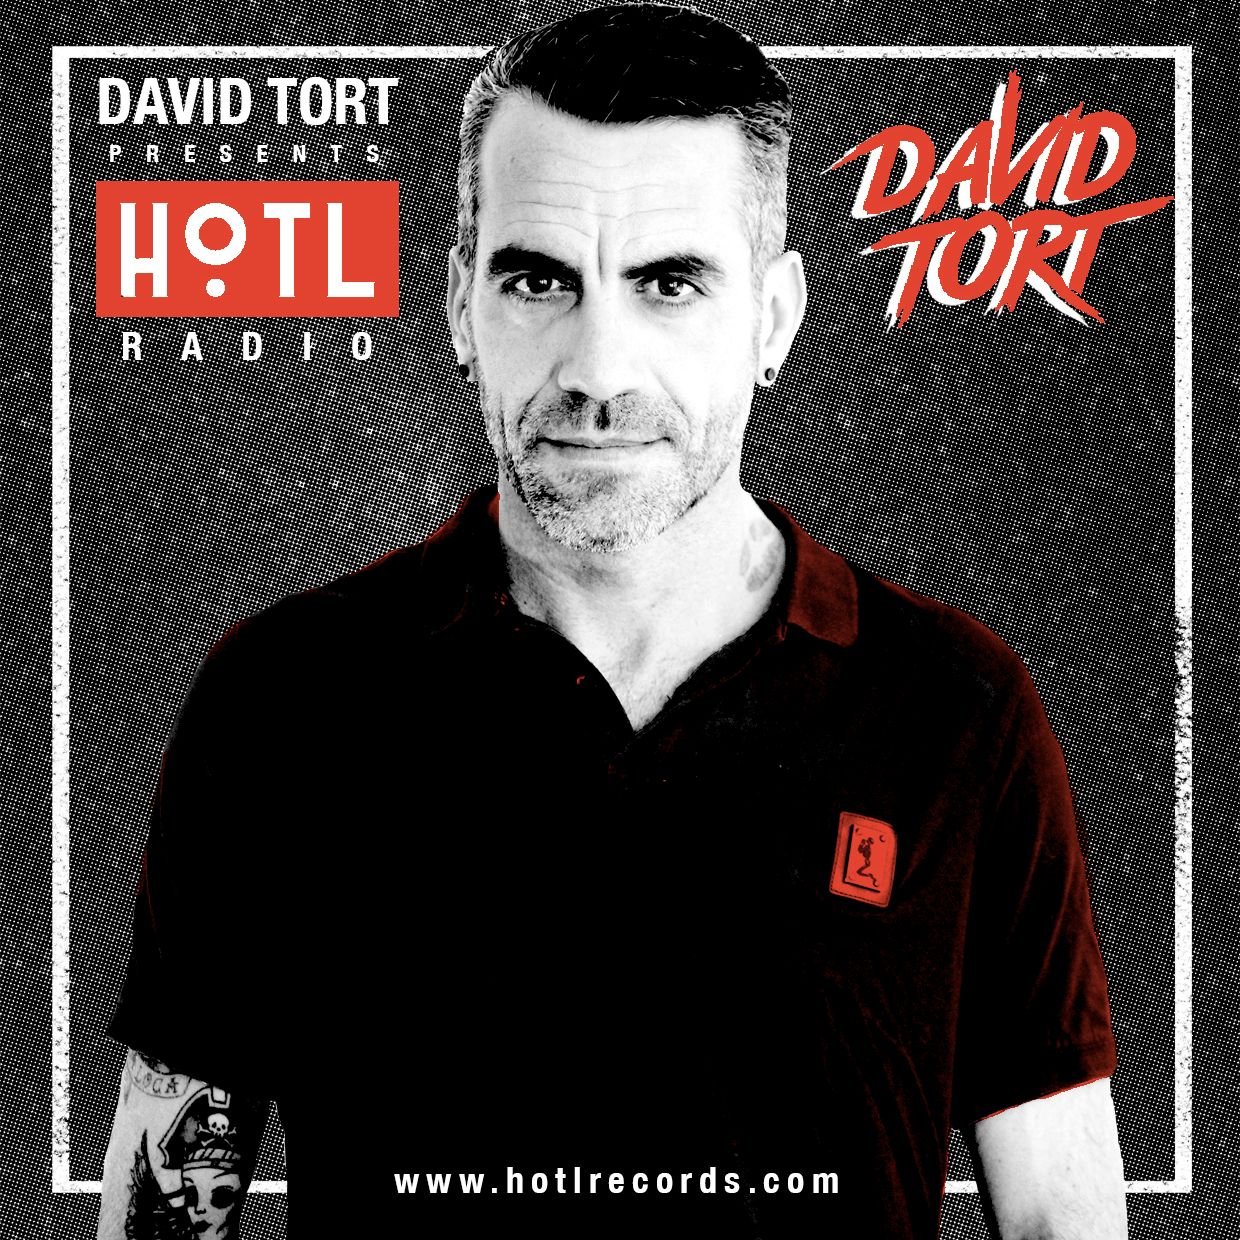 David Tort presents HoTL Radio 174 (David Tort Live at Juicy Beach Miami)